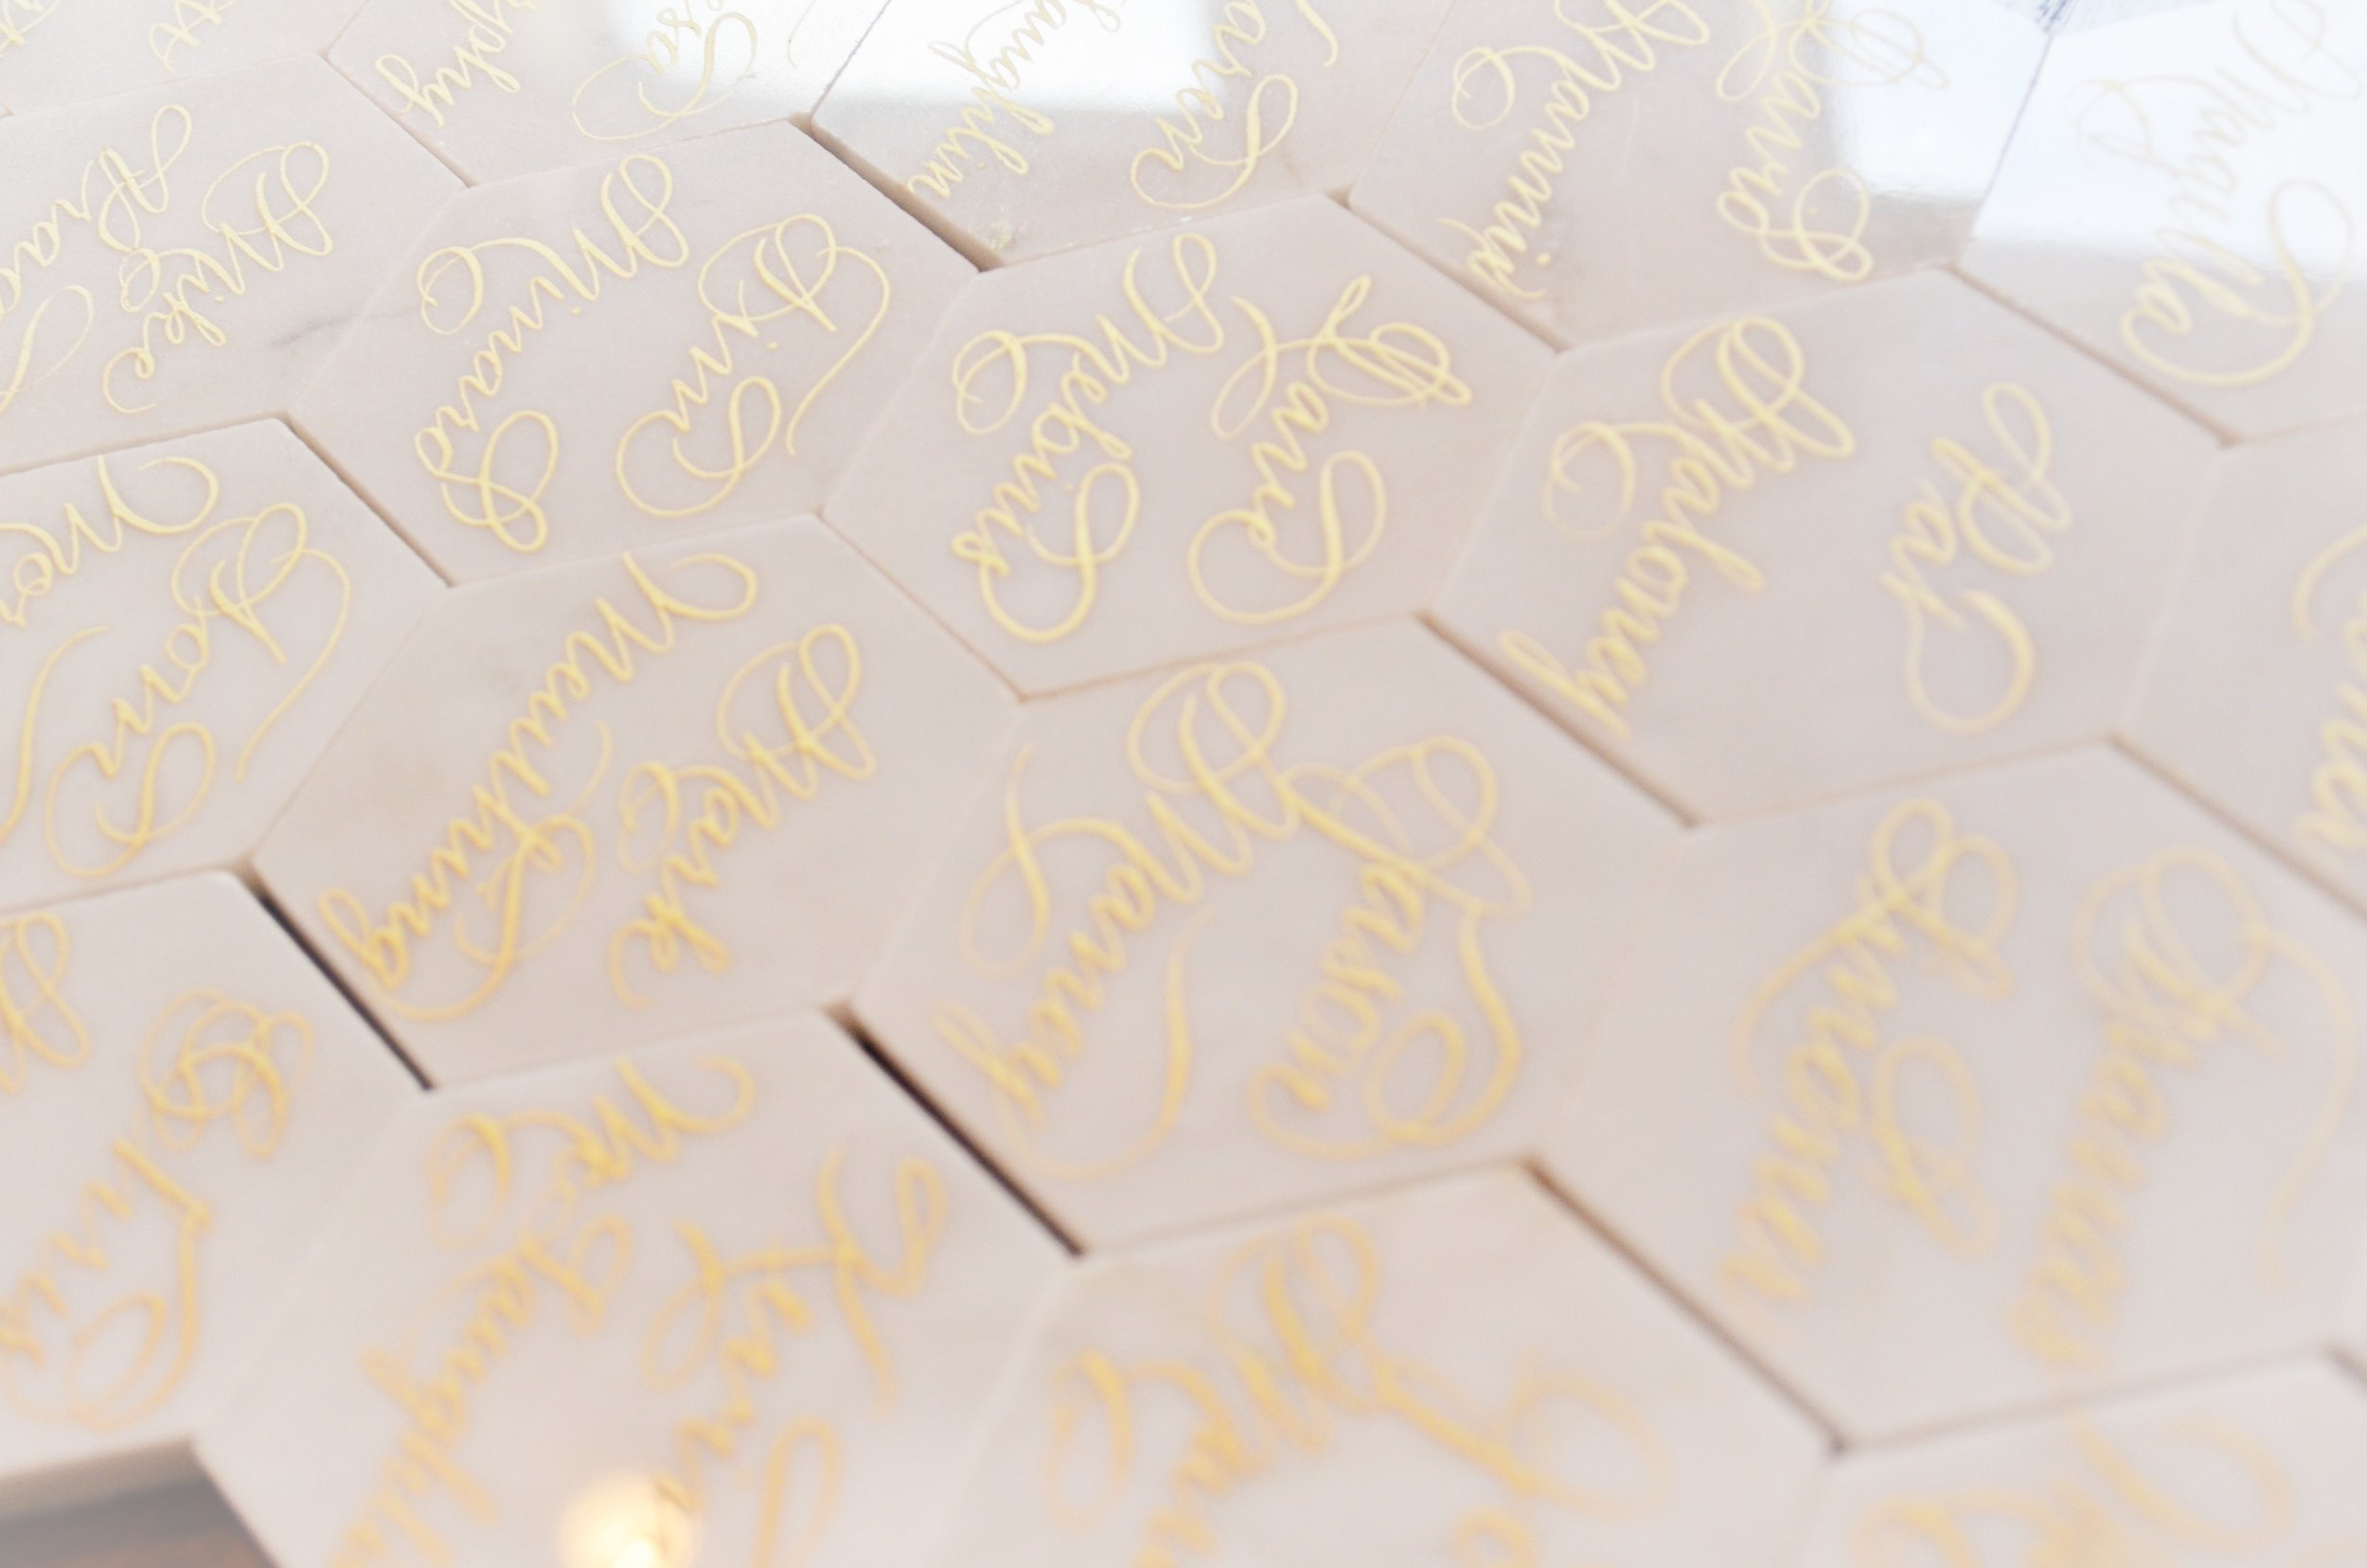 White Marble Calligraphy Place card Houston Los Angeles New York Miami 4.JPG